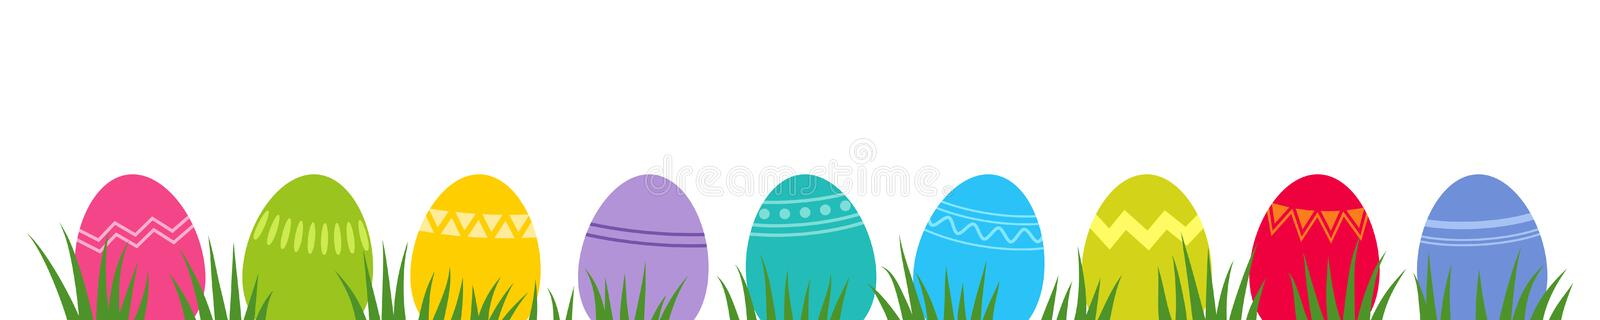 Colorful easter eggs with geometric patterns on grass, flat design, horizontal banner vector illustration